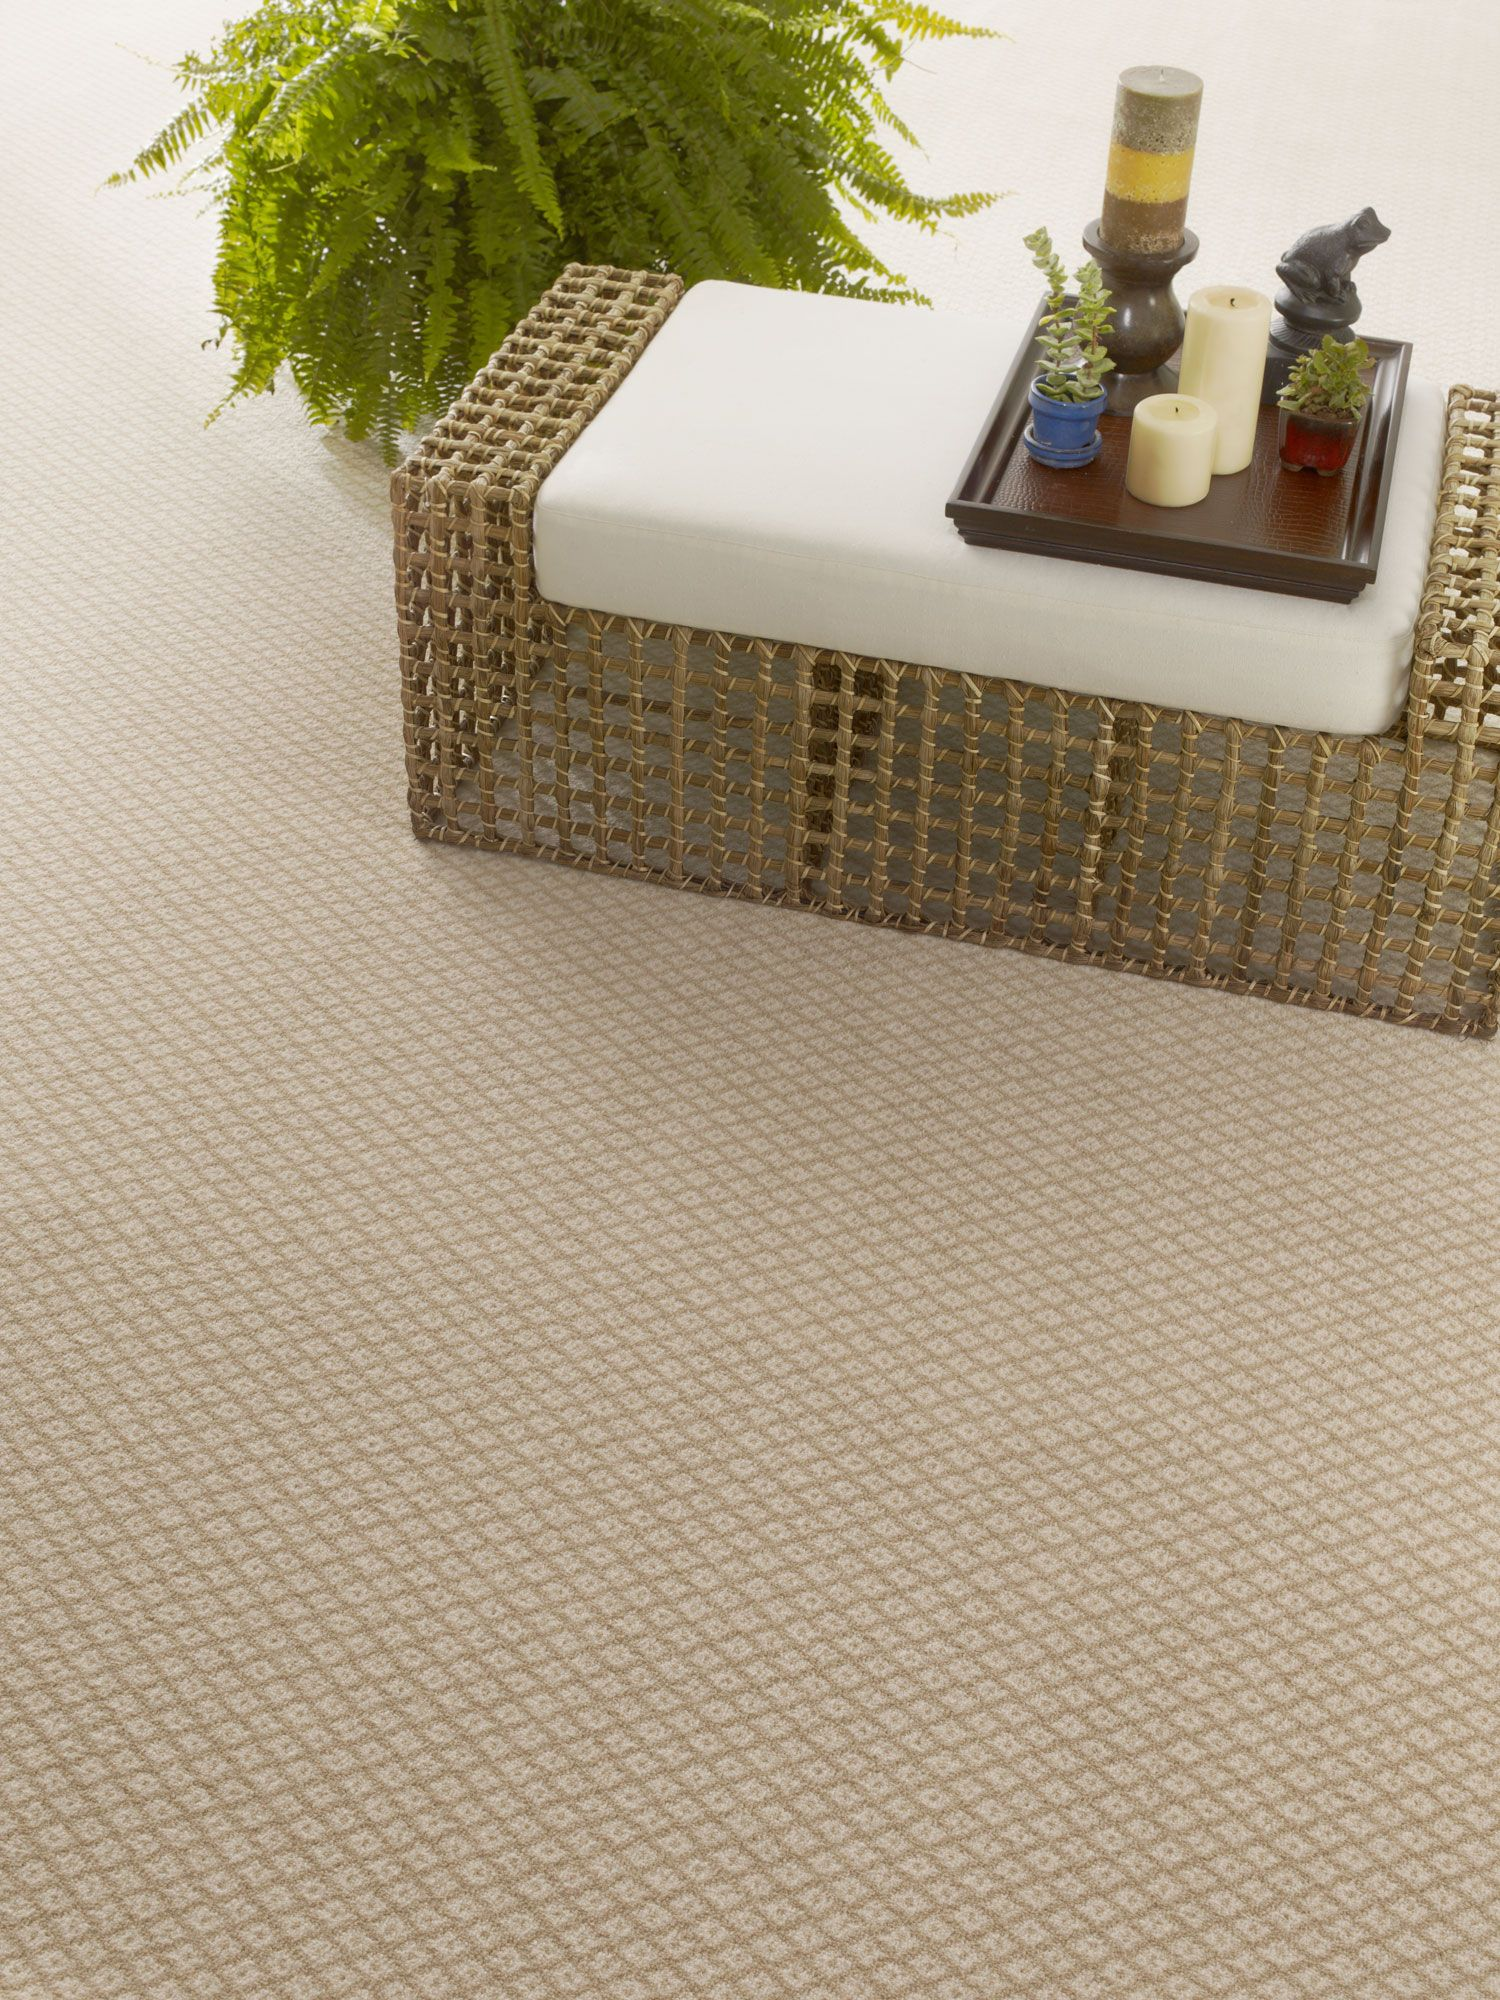 Simple Dotted Diamond Patterned Carpet Flooring Accents